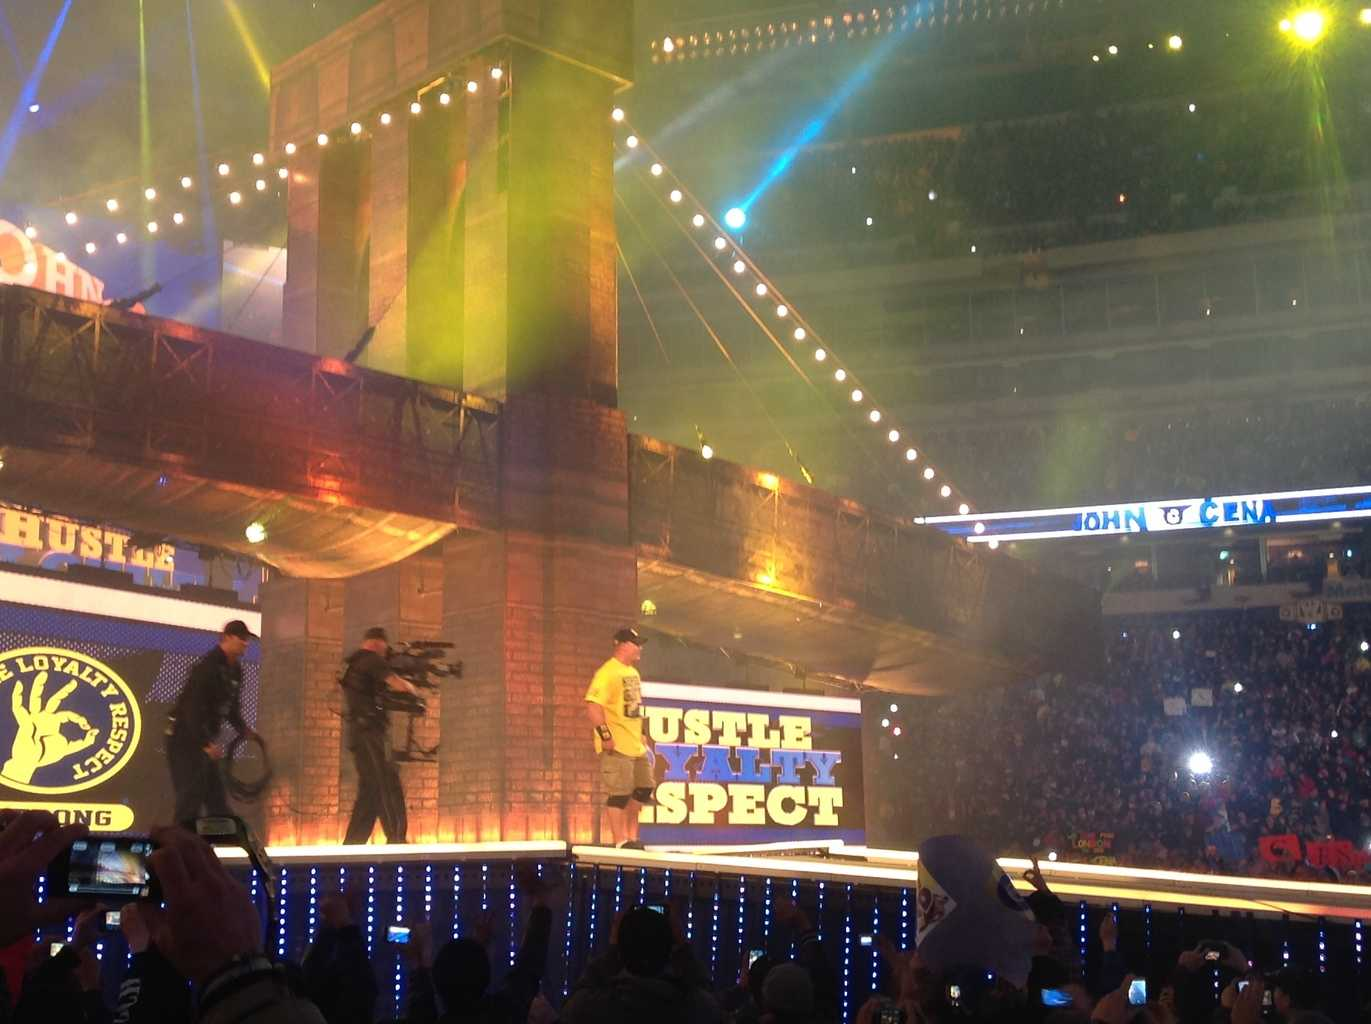 La discreta entrada de John Cena en Wrestlemania 29 / Photo by Alex Ruiz - Superluchas